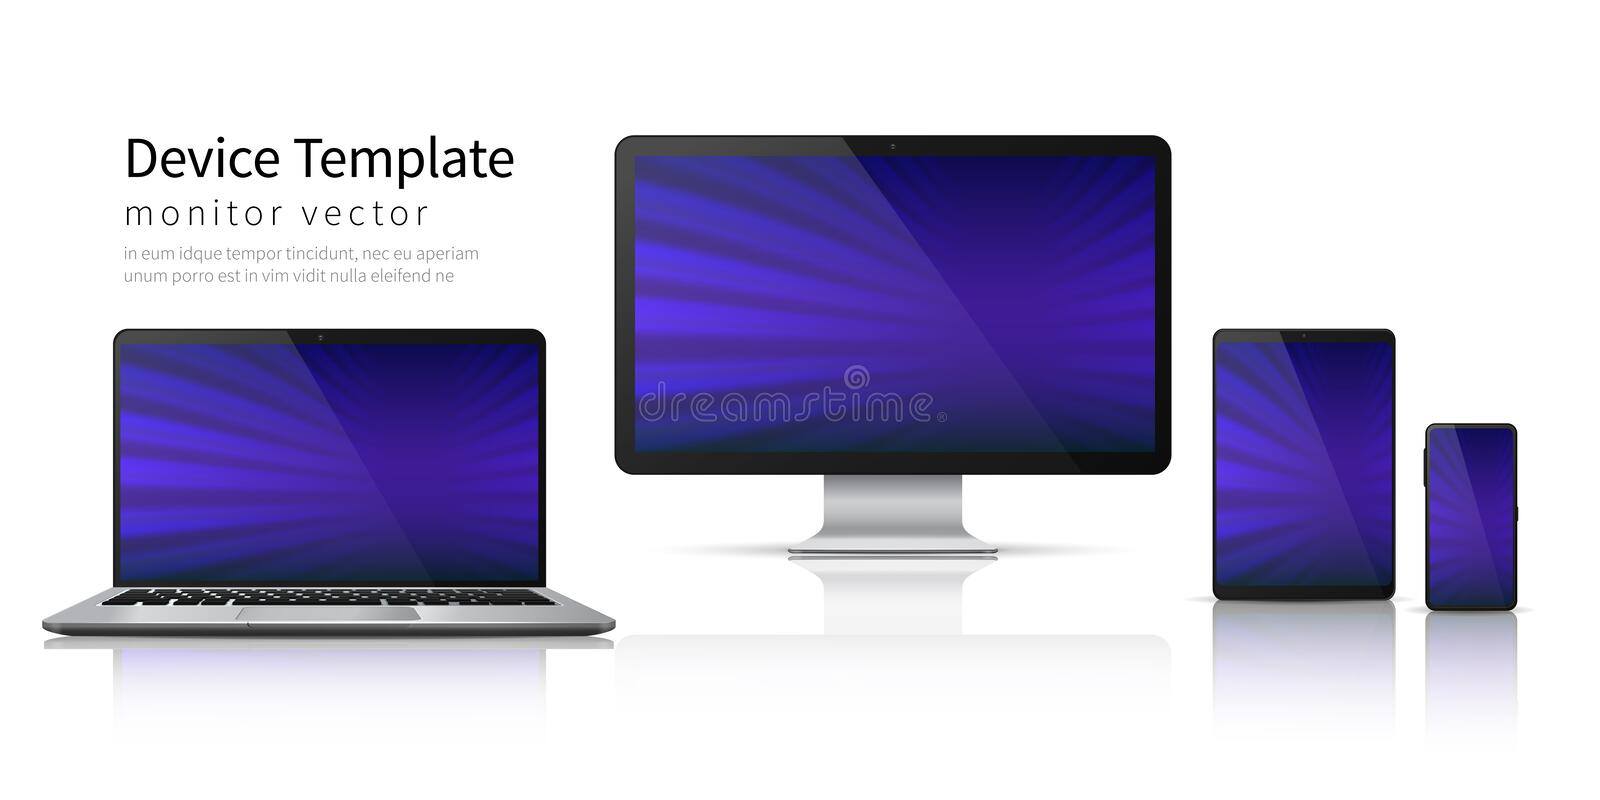 Realistic devices. Computer laptop tablet phone mockup, smartphone screen mobile gadget display. Monitor device template vector illustration